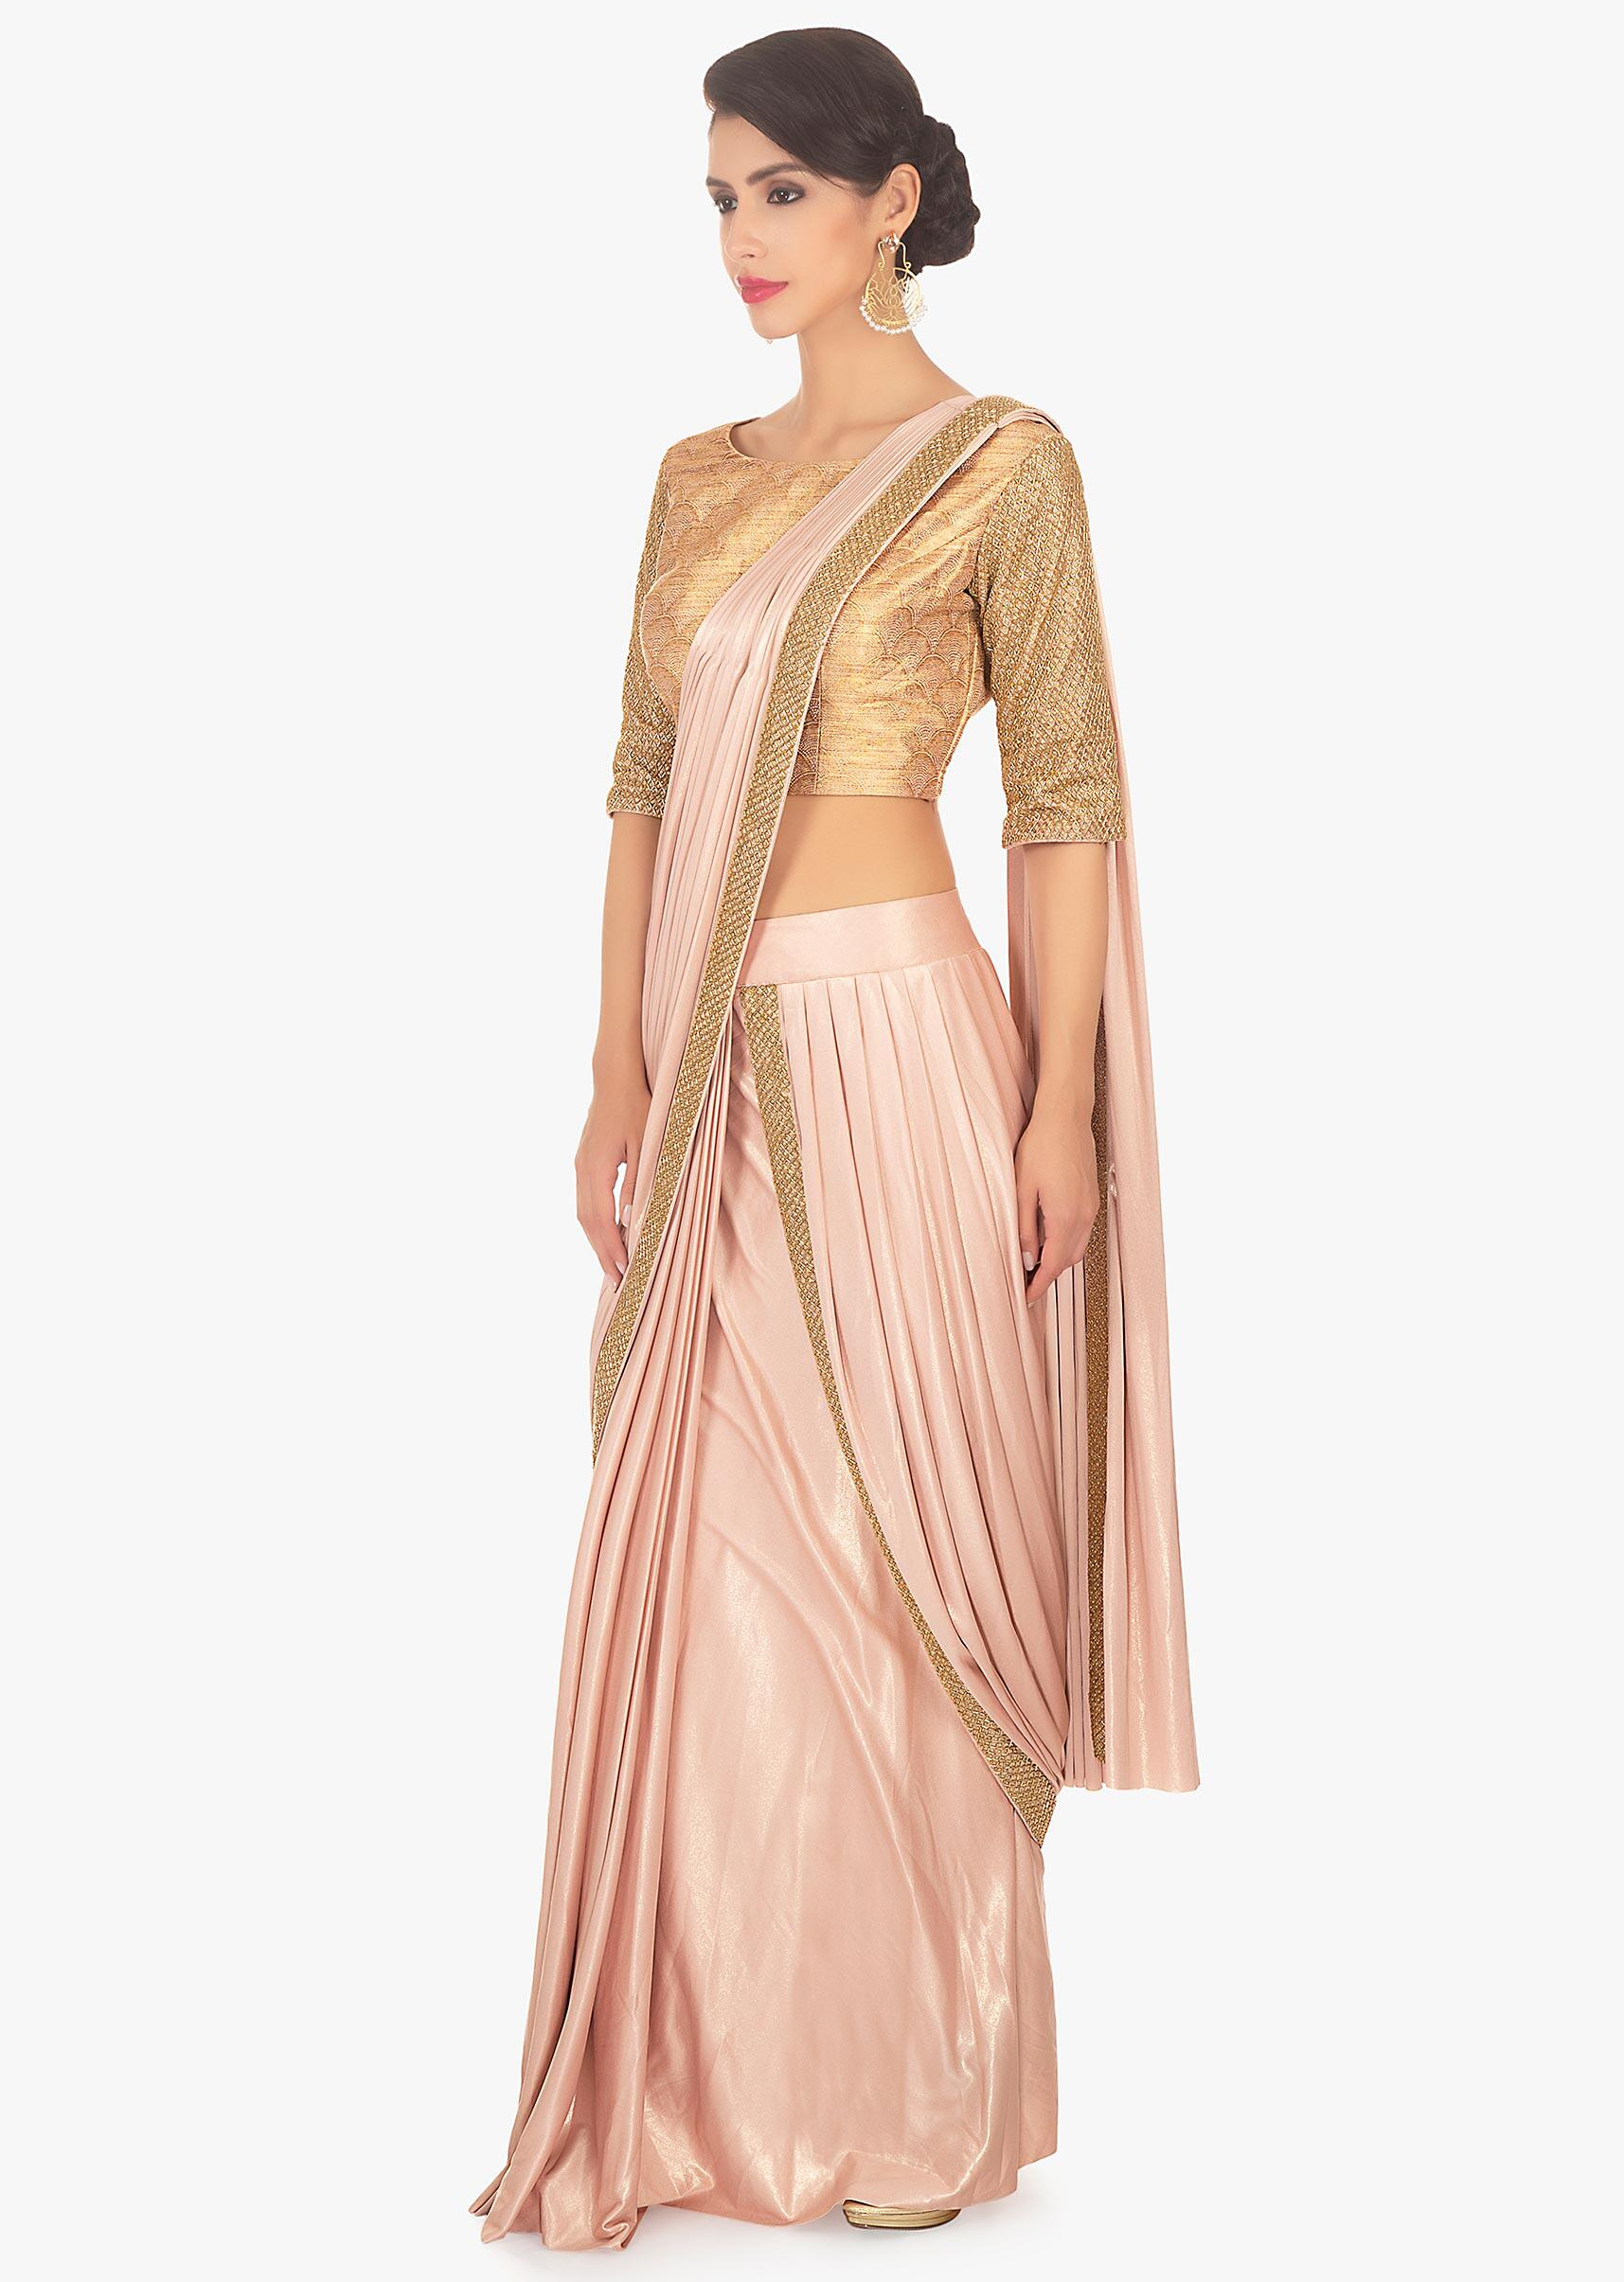 24498cbd8 Fancy fabric peach blouse with lycra saree skirt in ready plated pre  stitched pallo only on Kalki